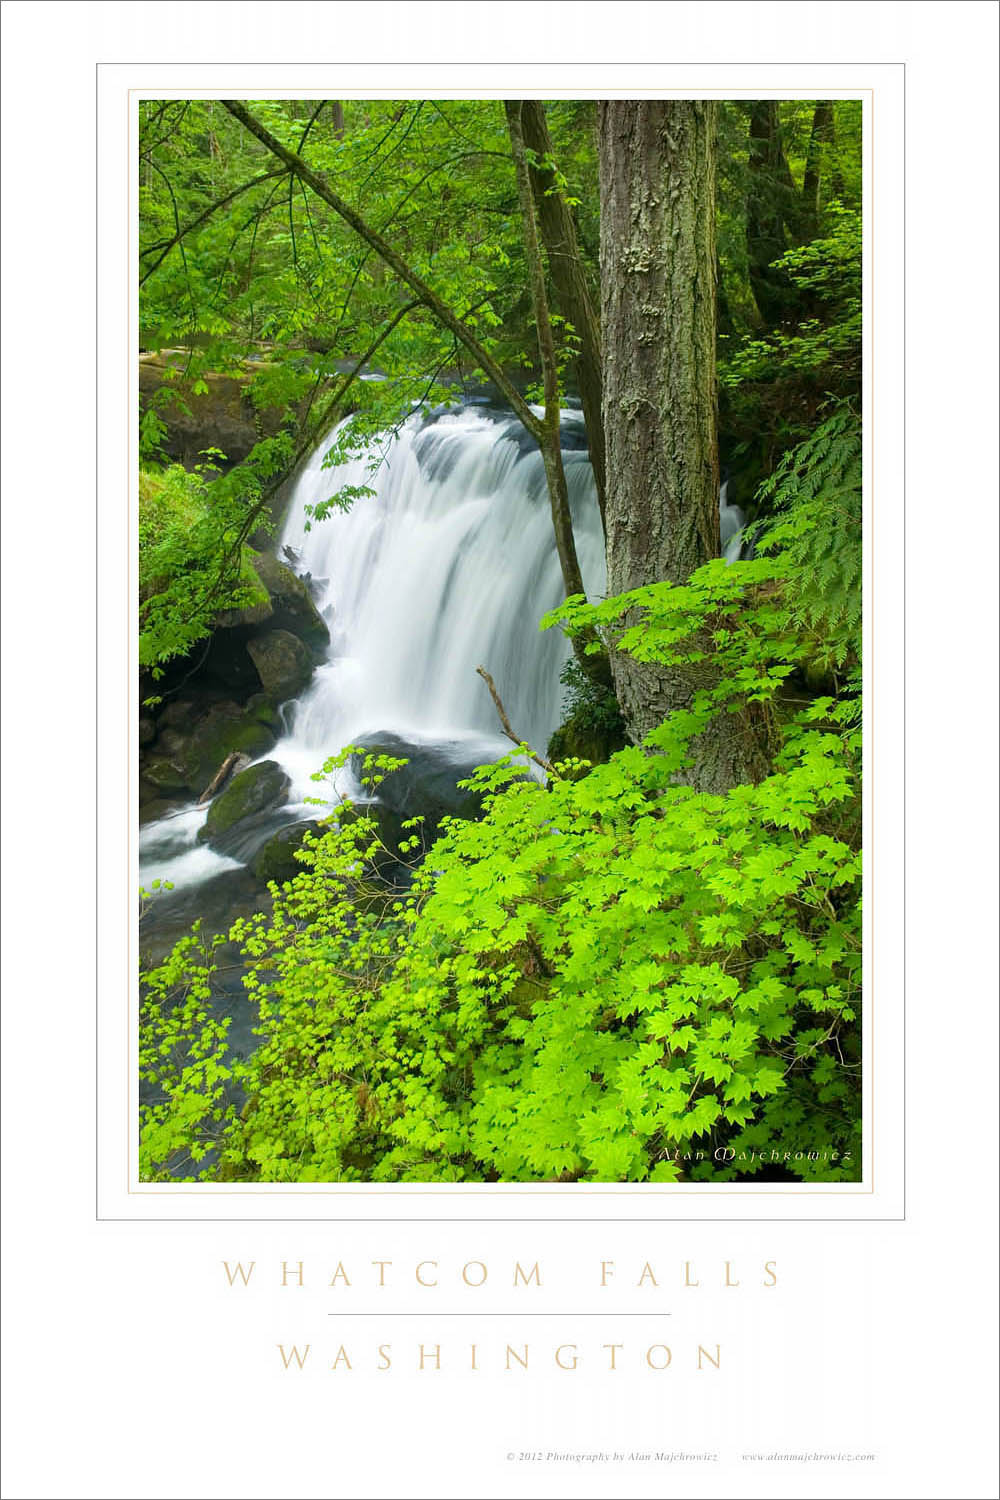 Whatcom Falls Washington